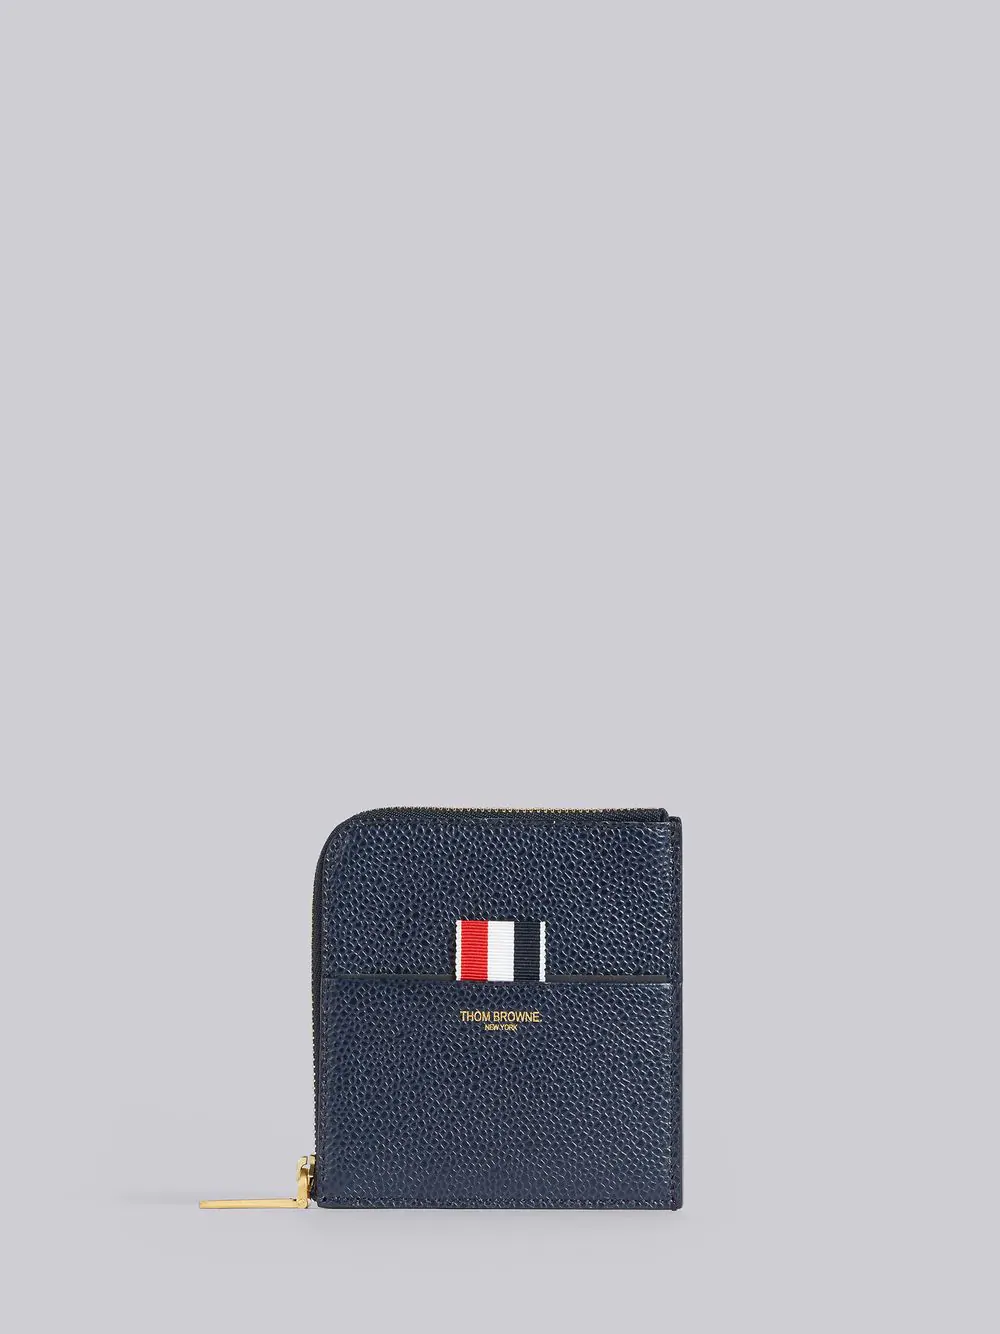 7399bb8384d Thom Browne Bicolor Square Wallet In Blue | ModeSens